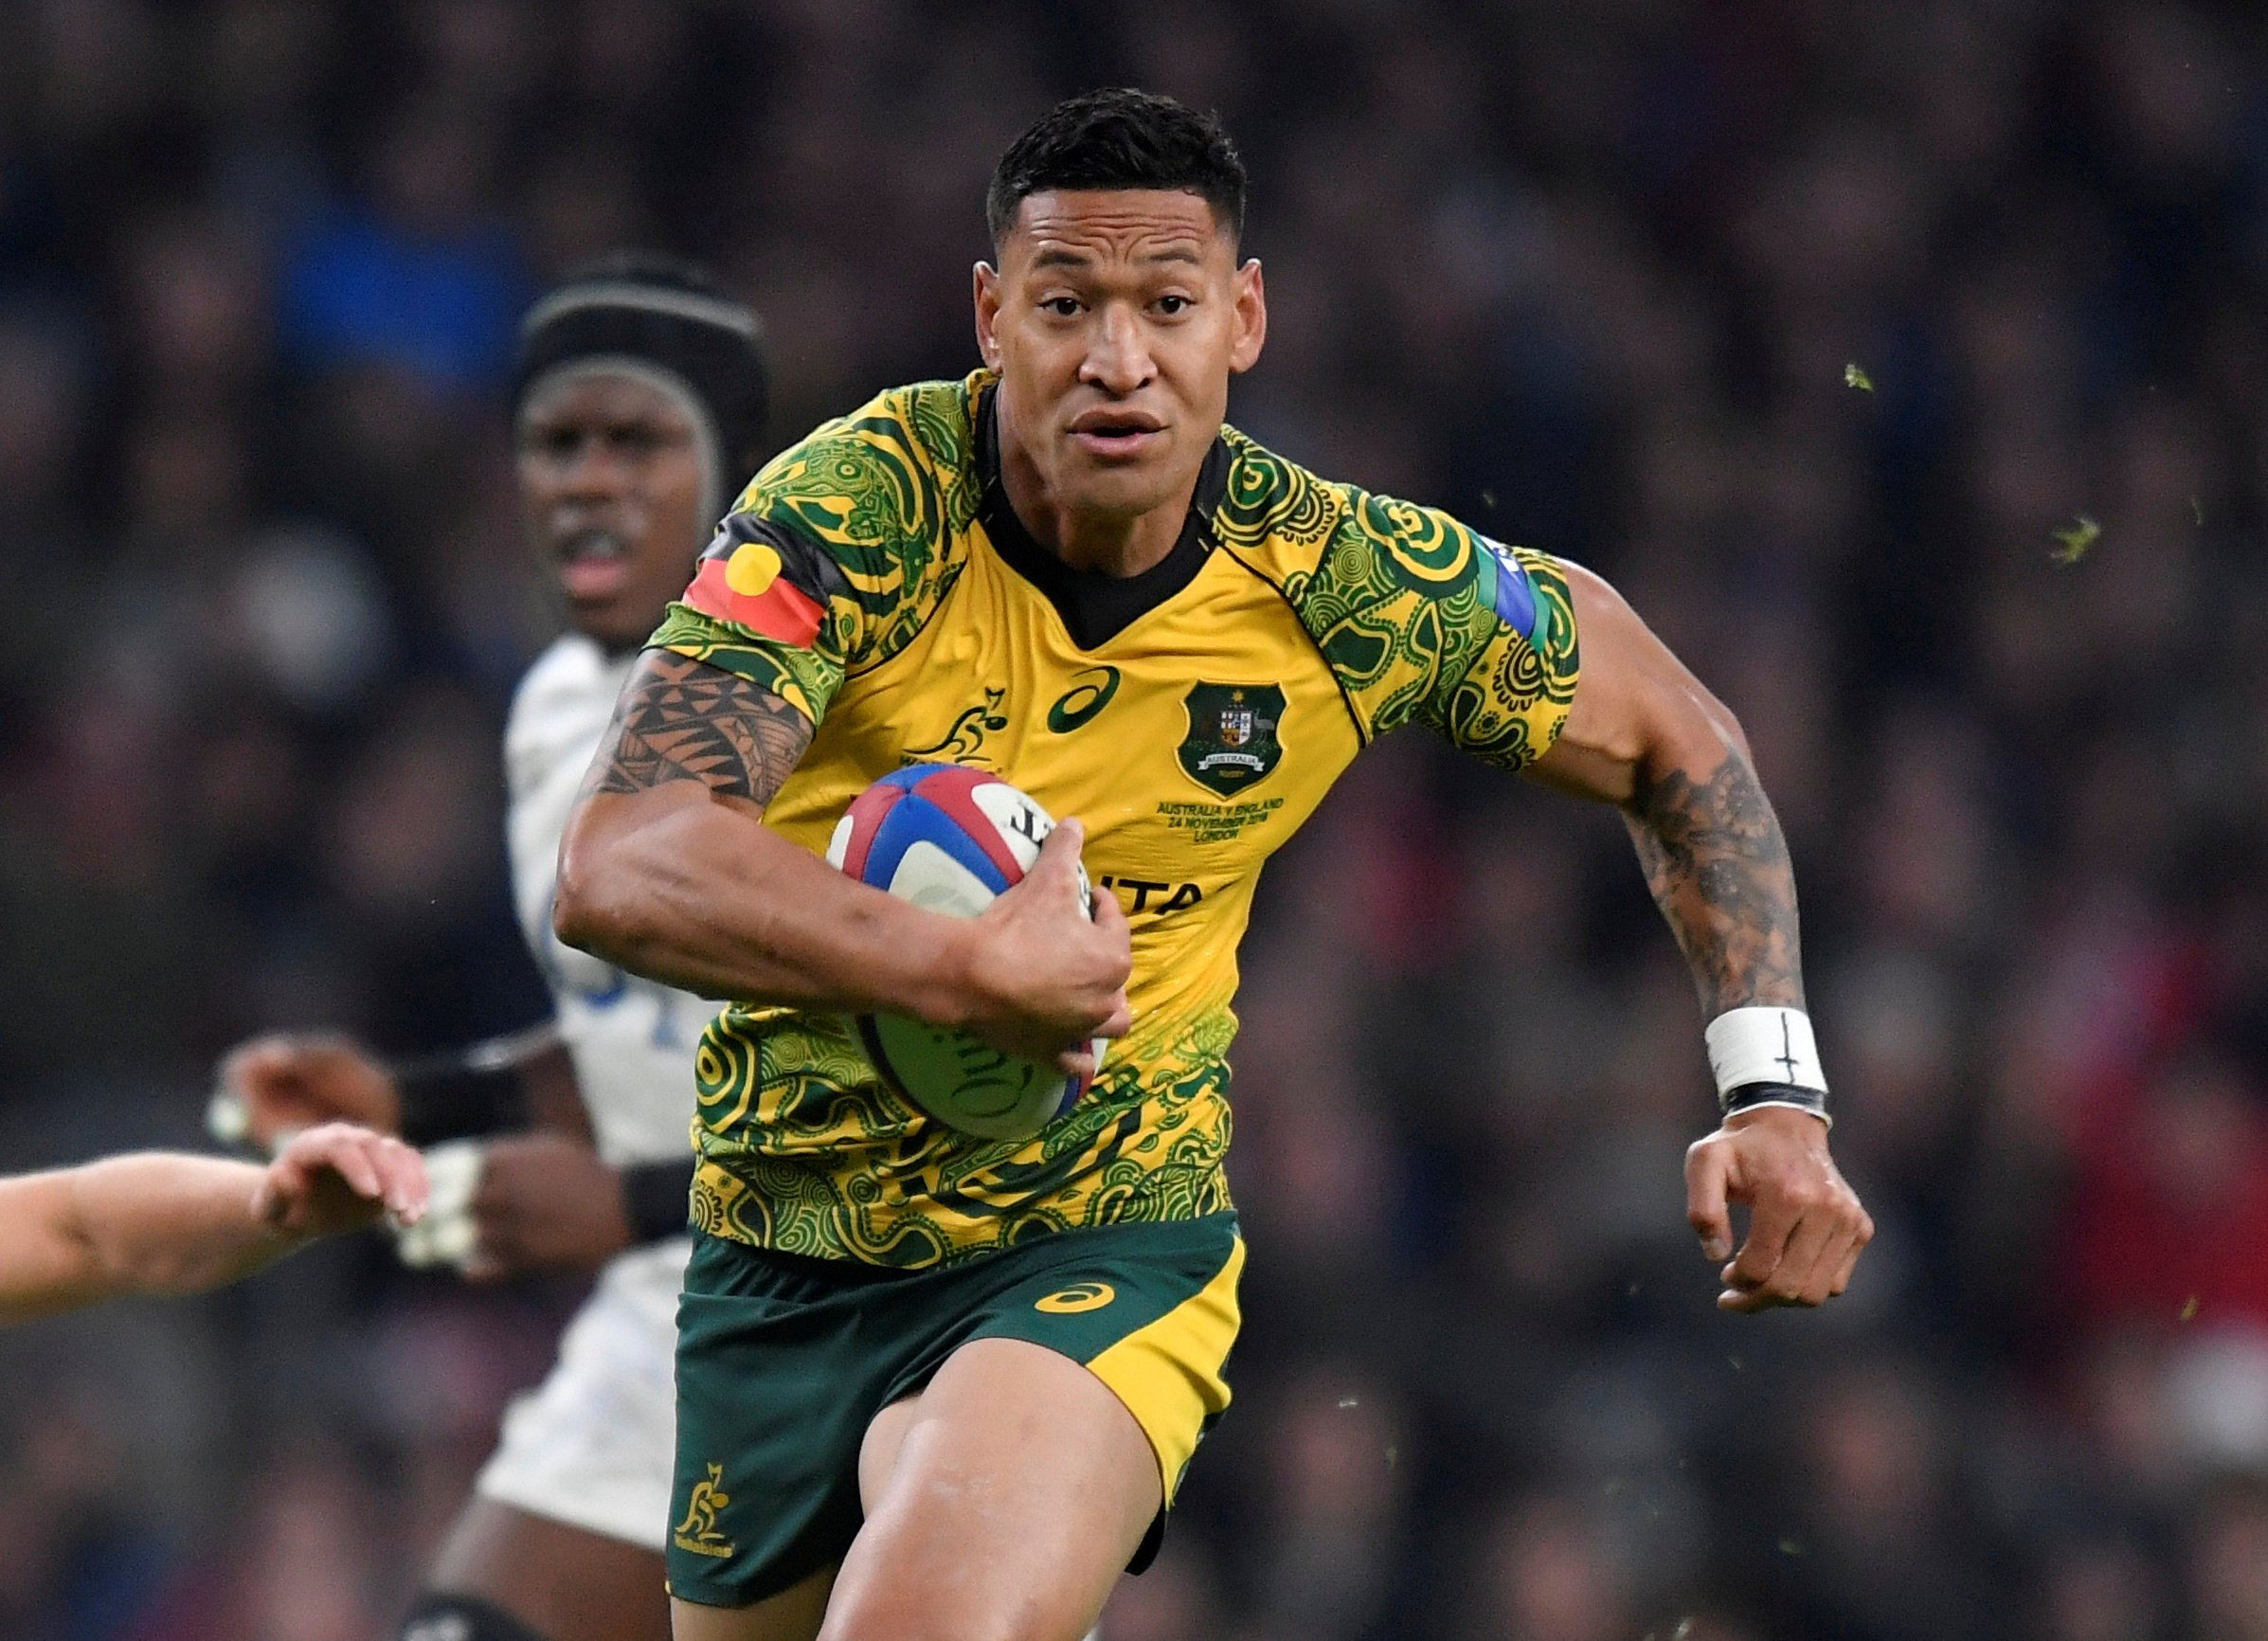 FILE PHOTO: Rugby Union - England v Australia - Twickenham Stadium, London, Britain - November 24, 2018 Australia's Israel Folau runs in to score their first try REUTERS/Toby Melville/File Photo